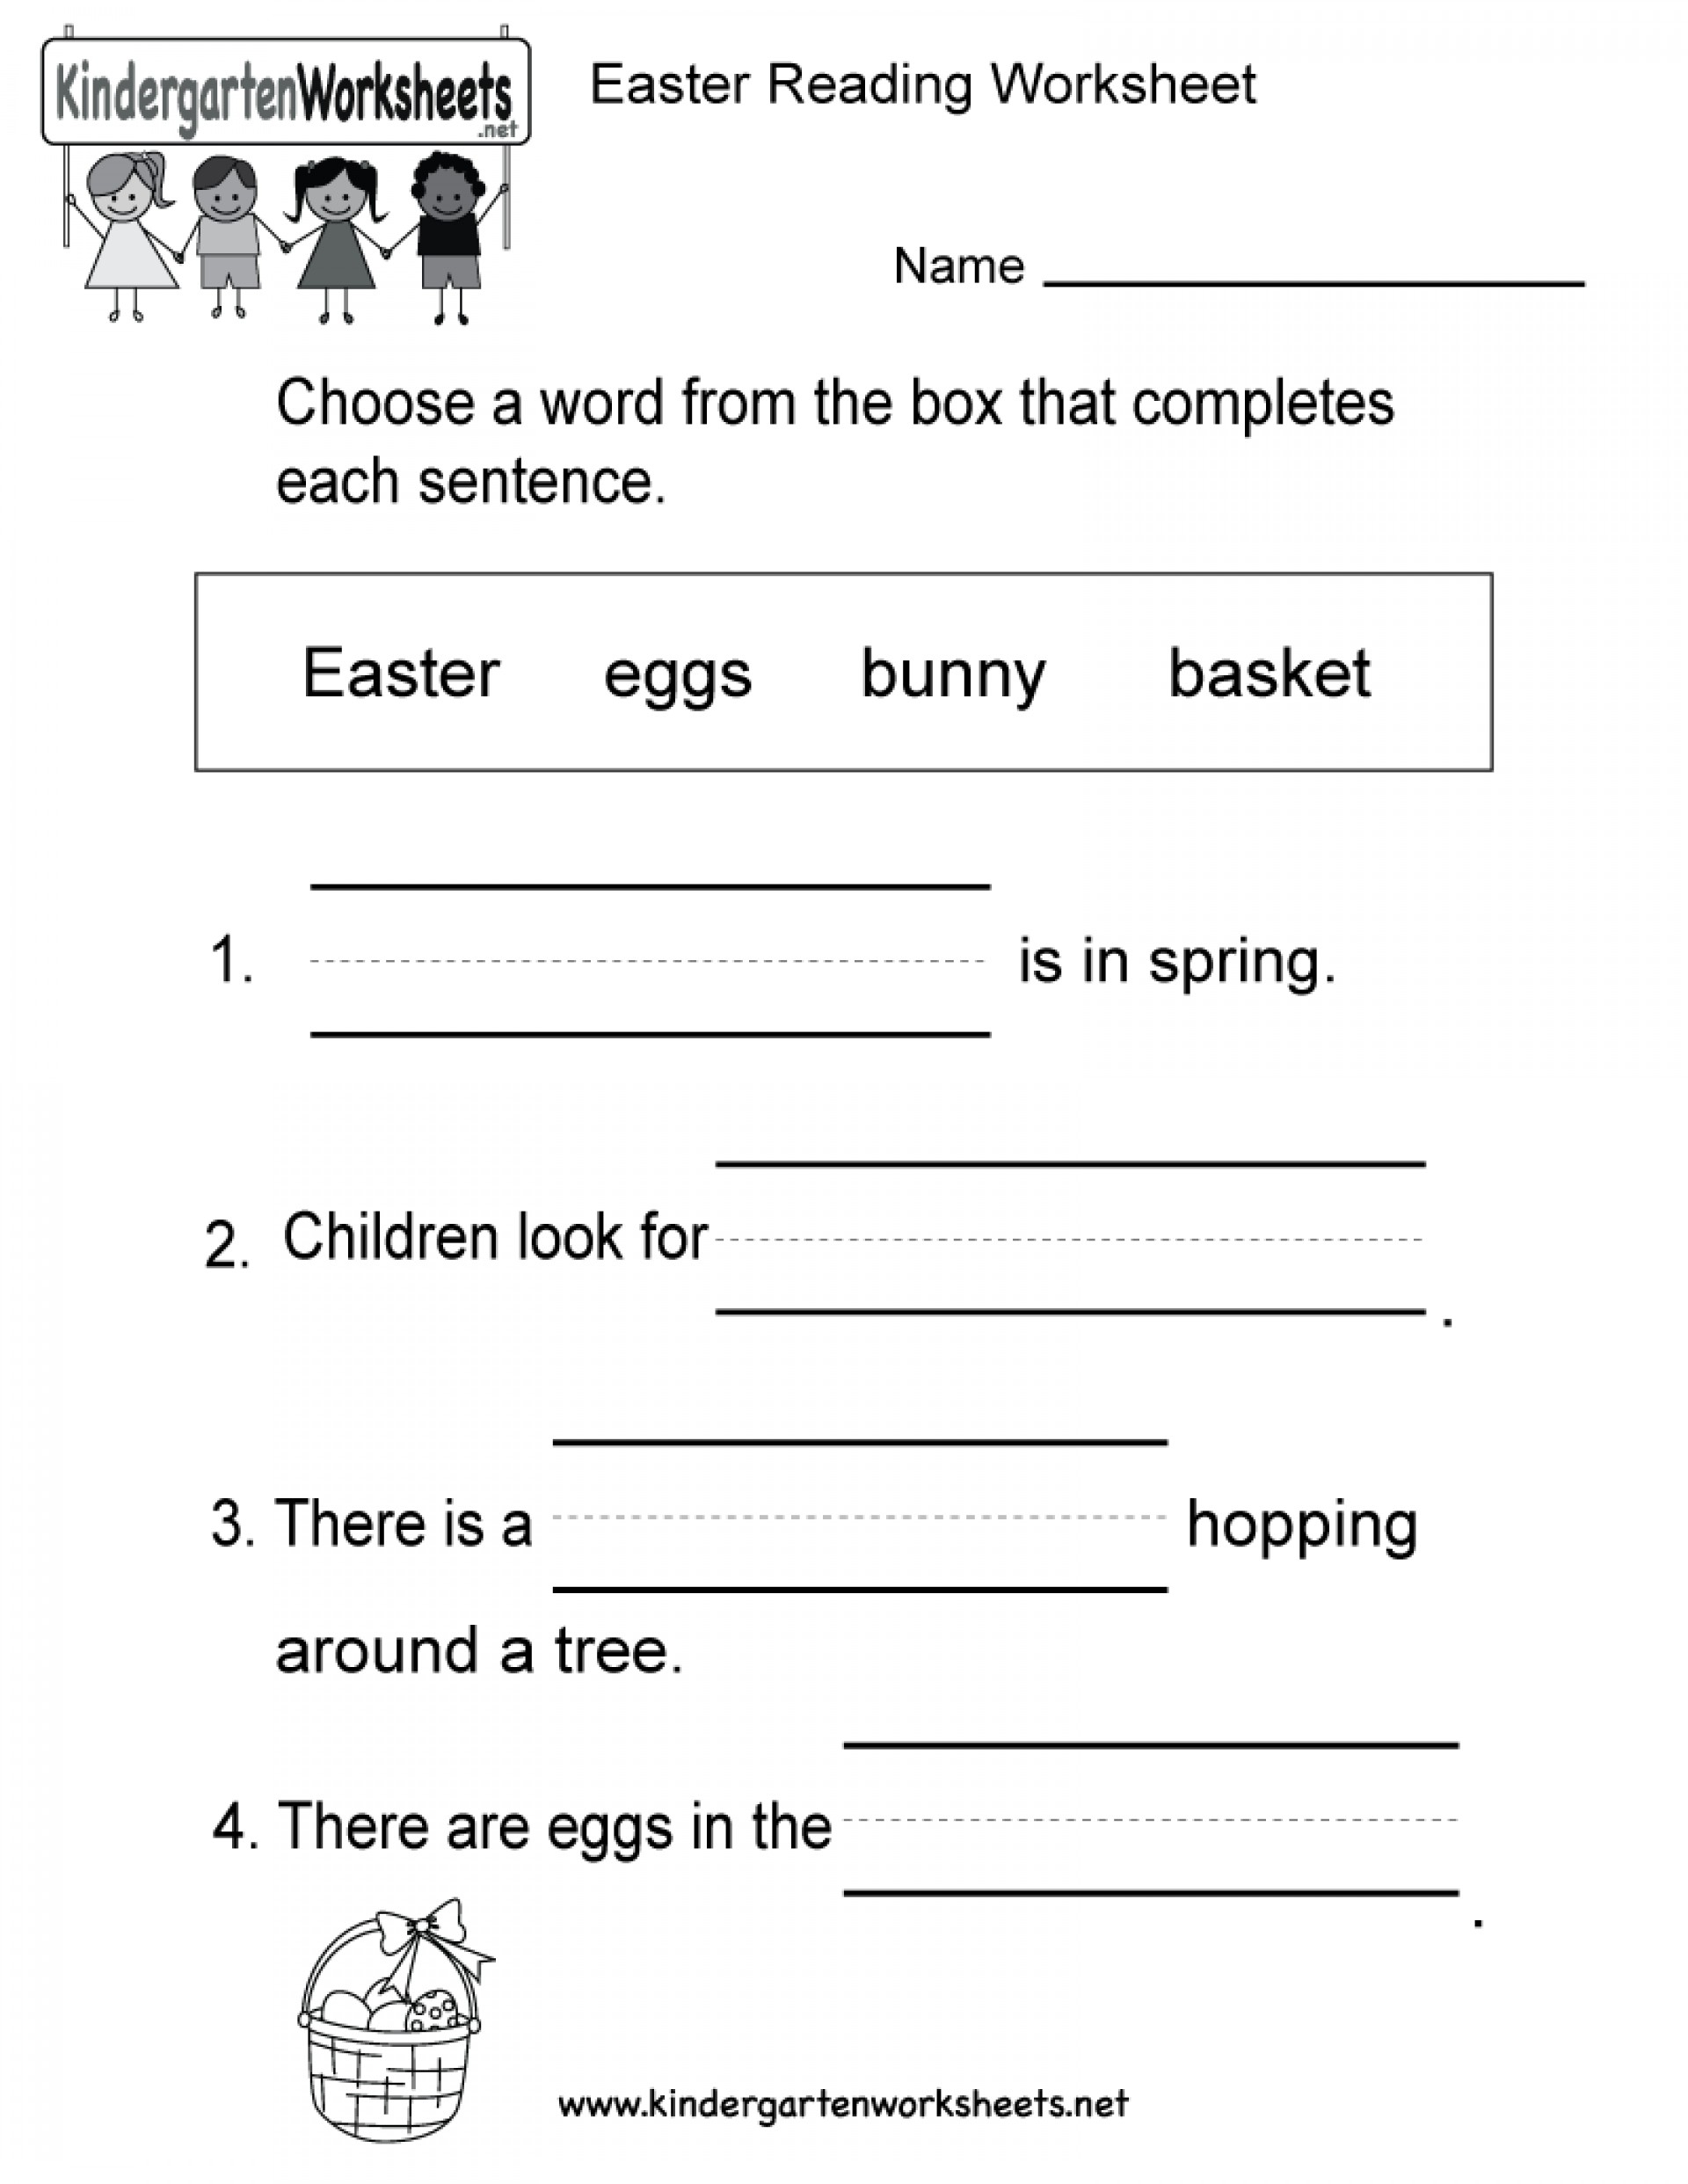 Kumon Reading Worksheets Free Download